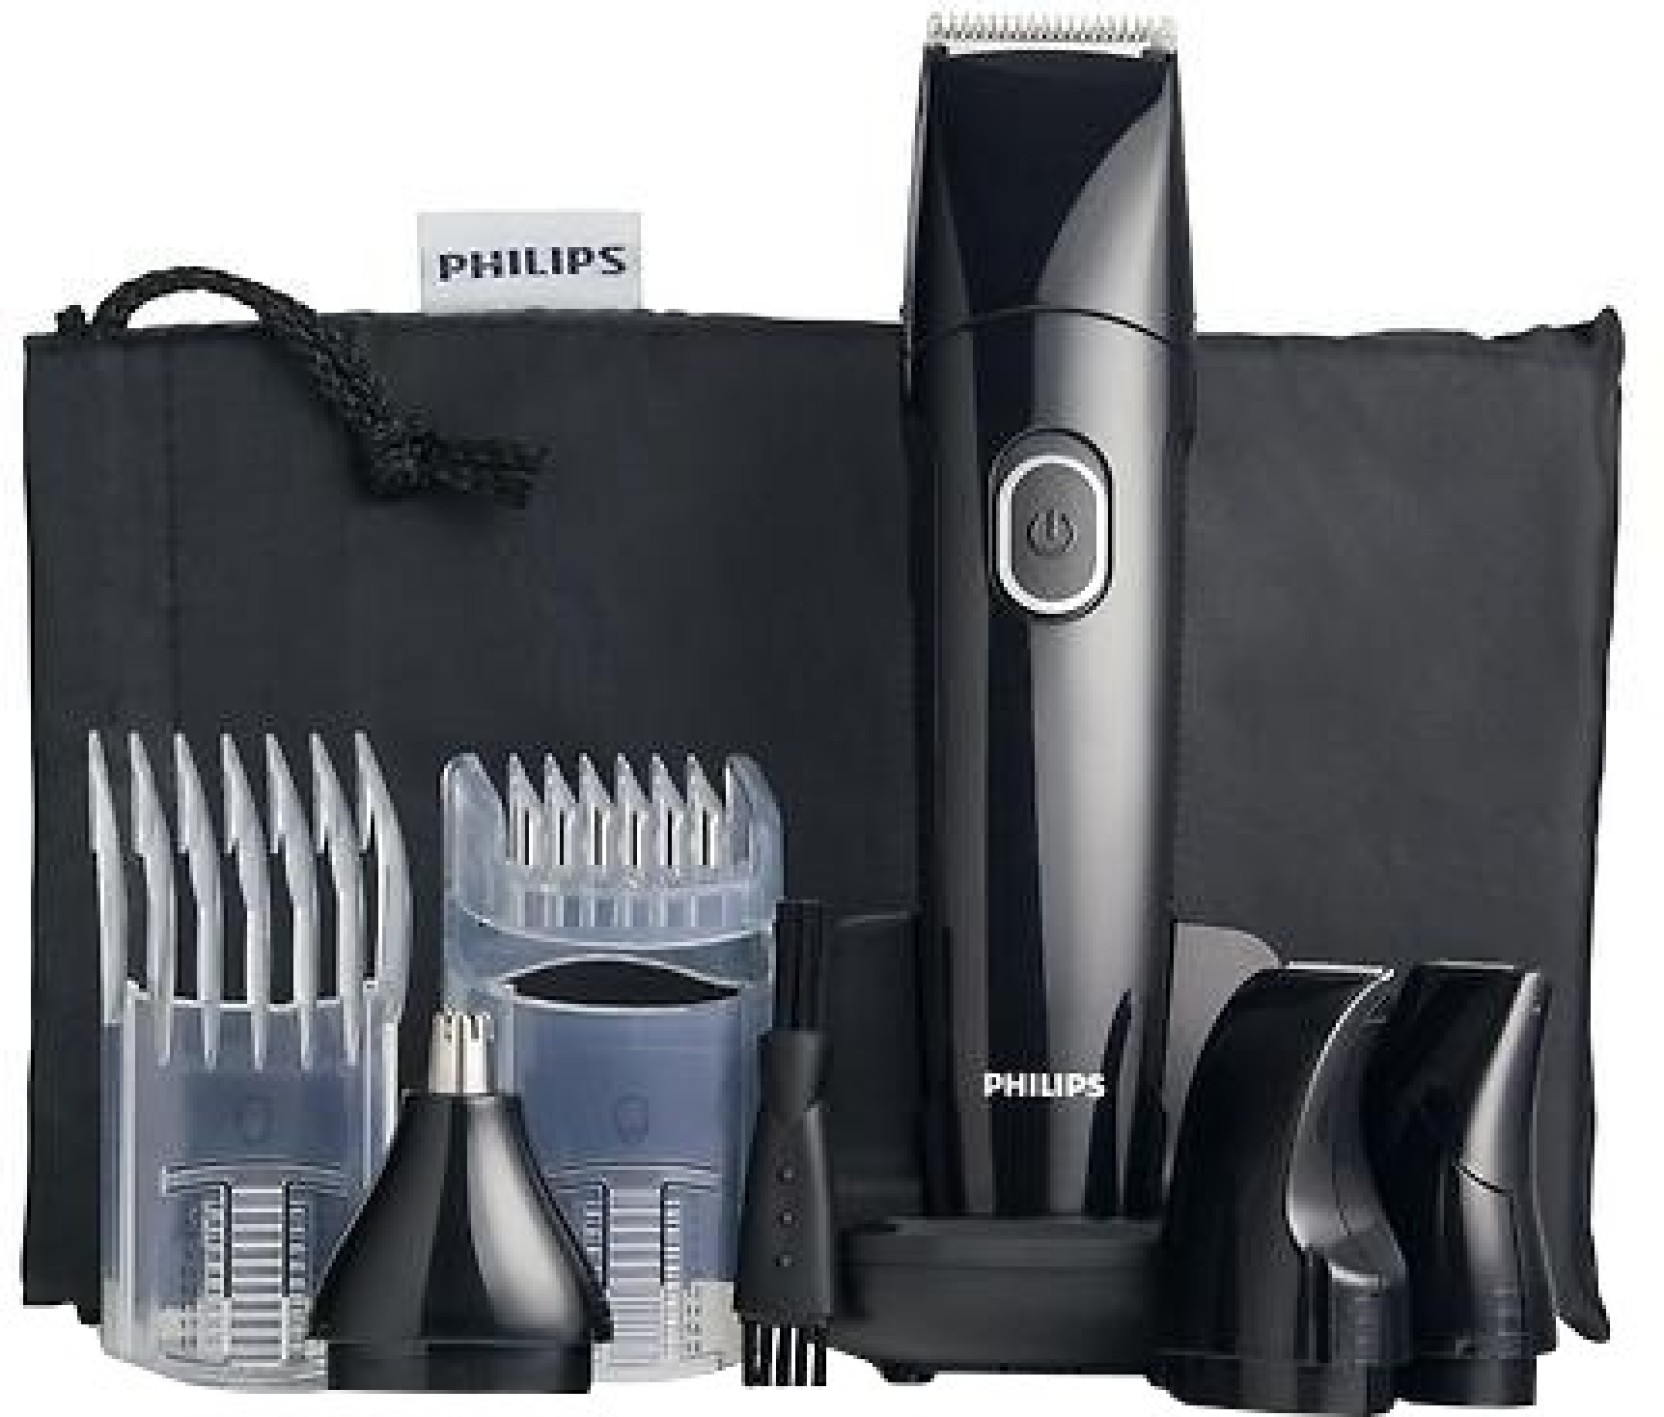 philips qg3250 grooming kit for men philips. Black Bedroom Furniture Sets. Home Design Ideas